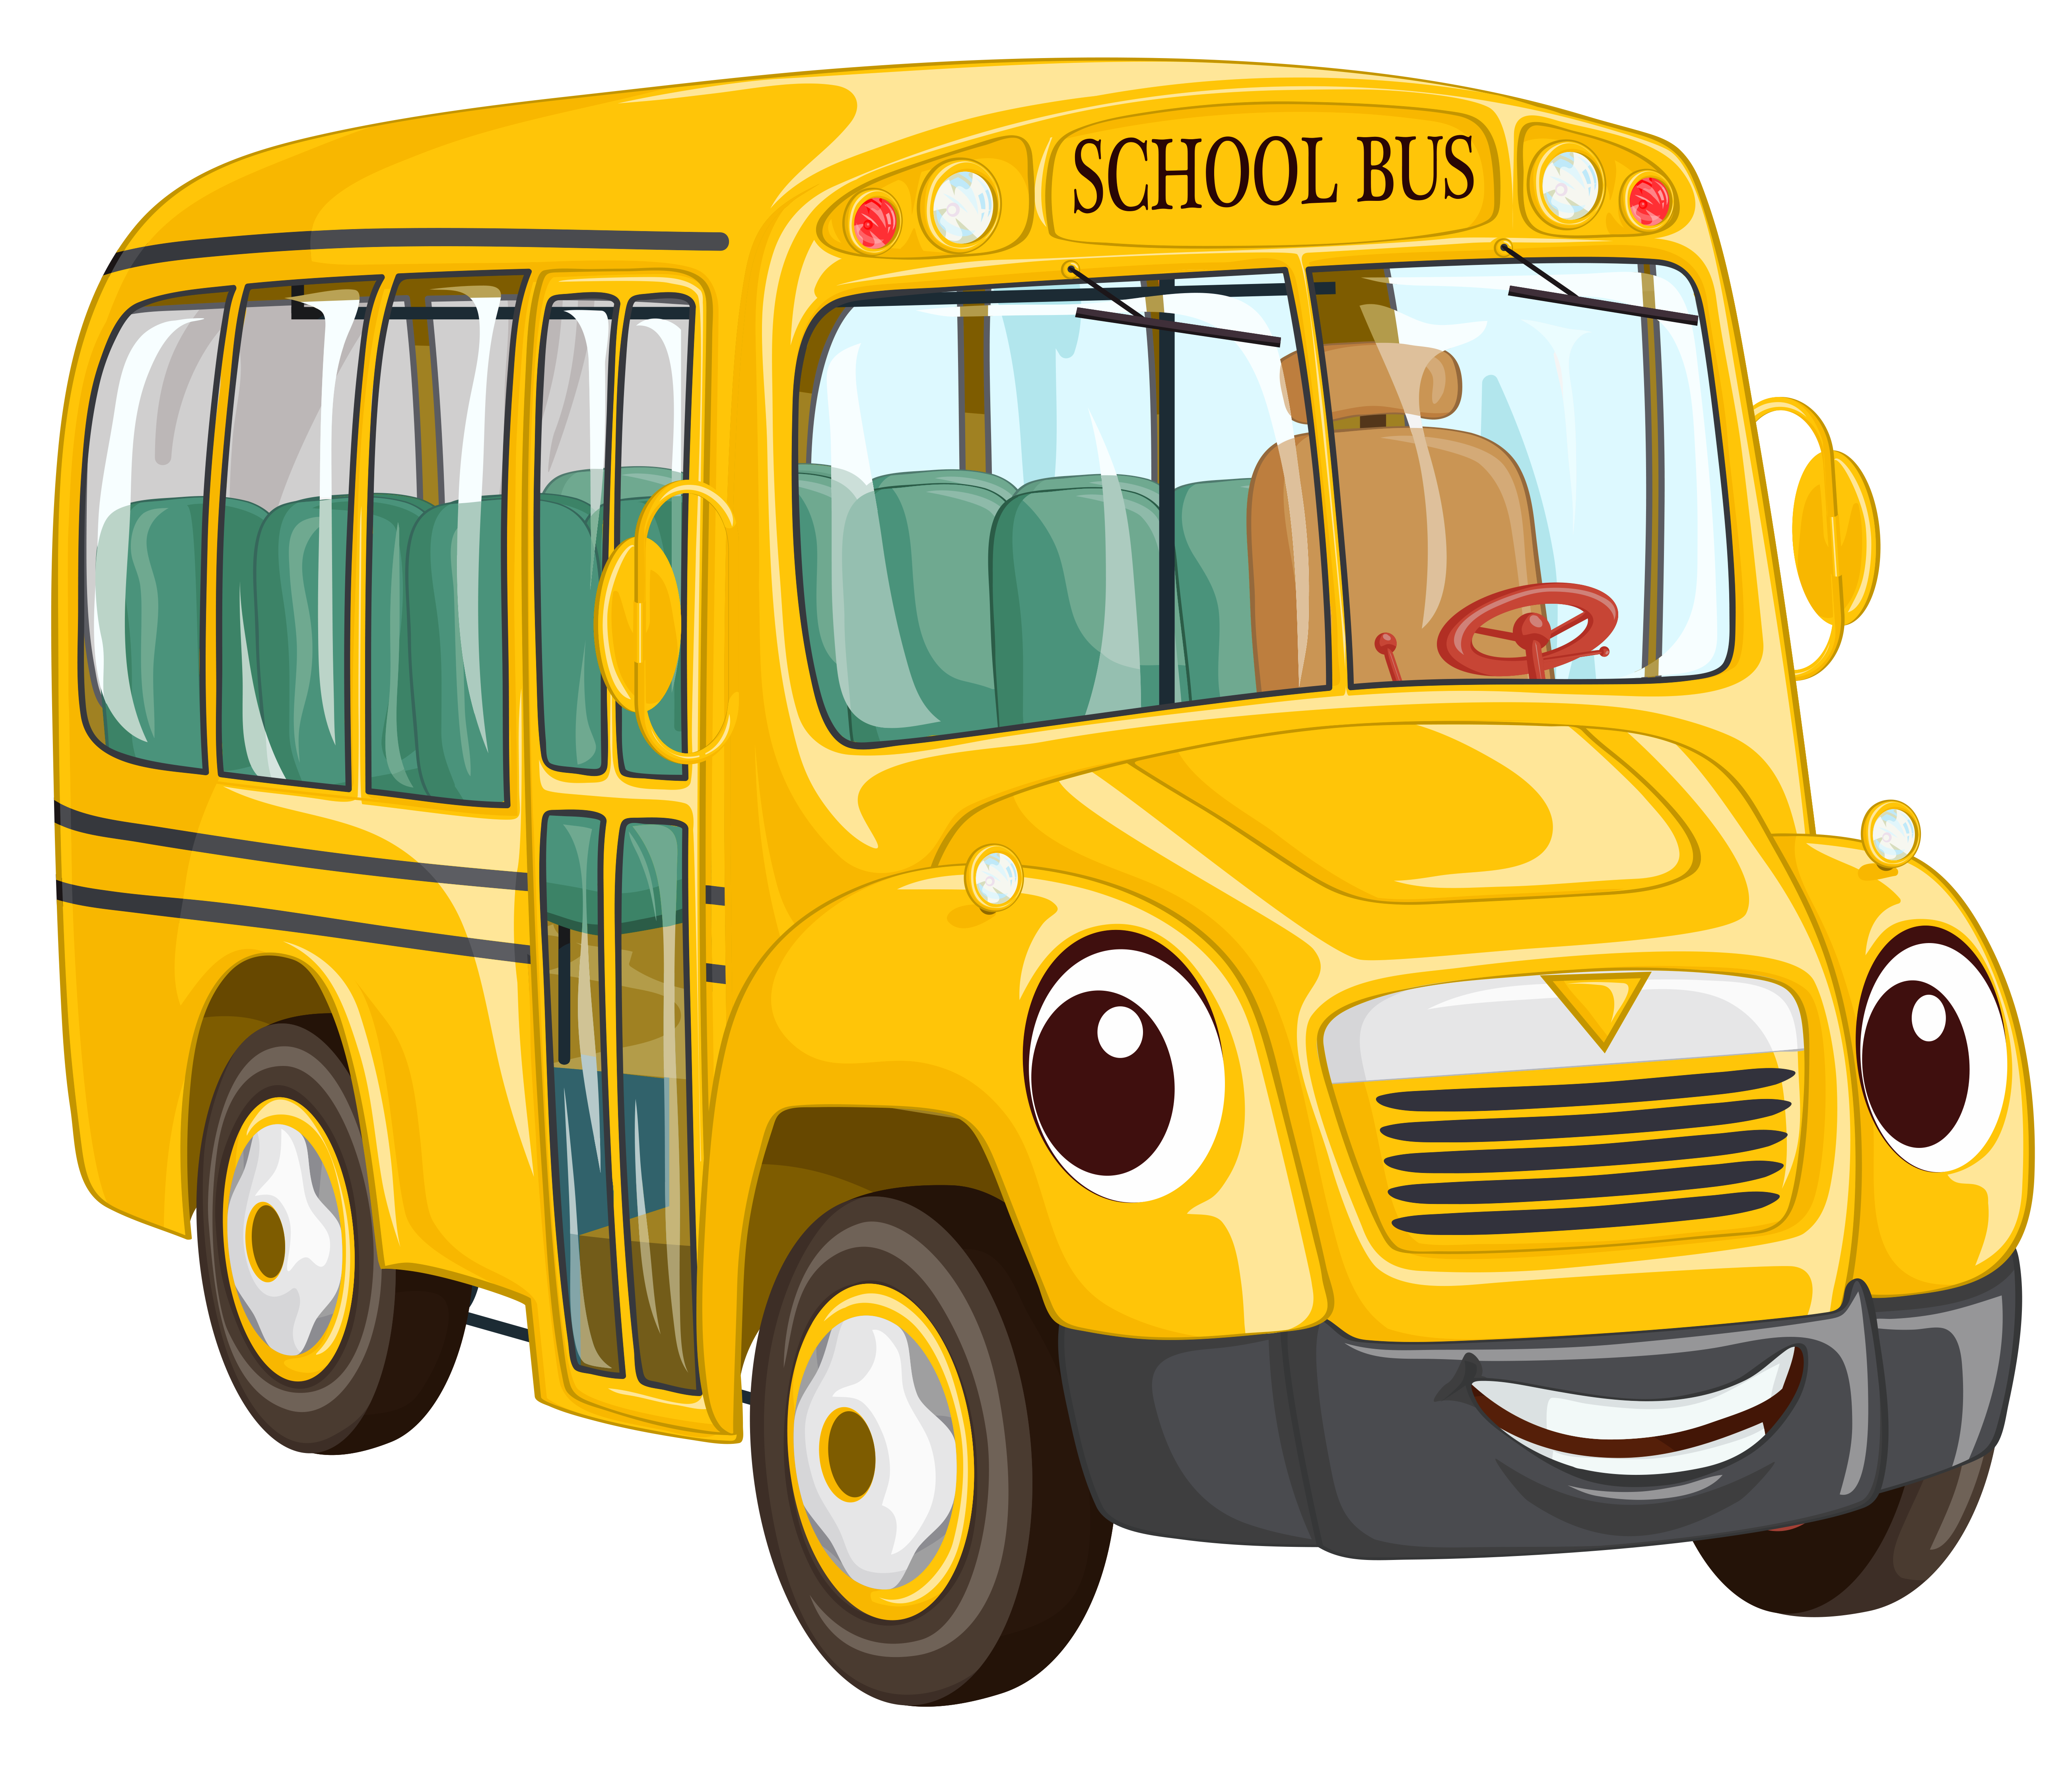 Bus clip art png. School clipart image gallery